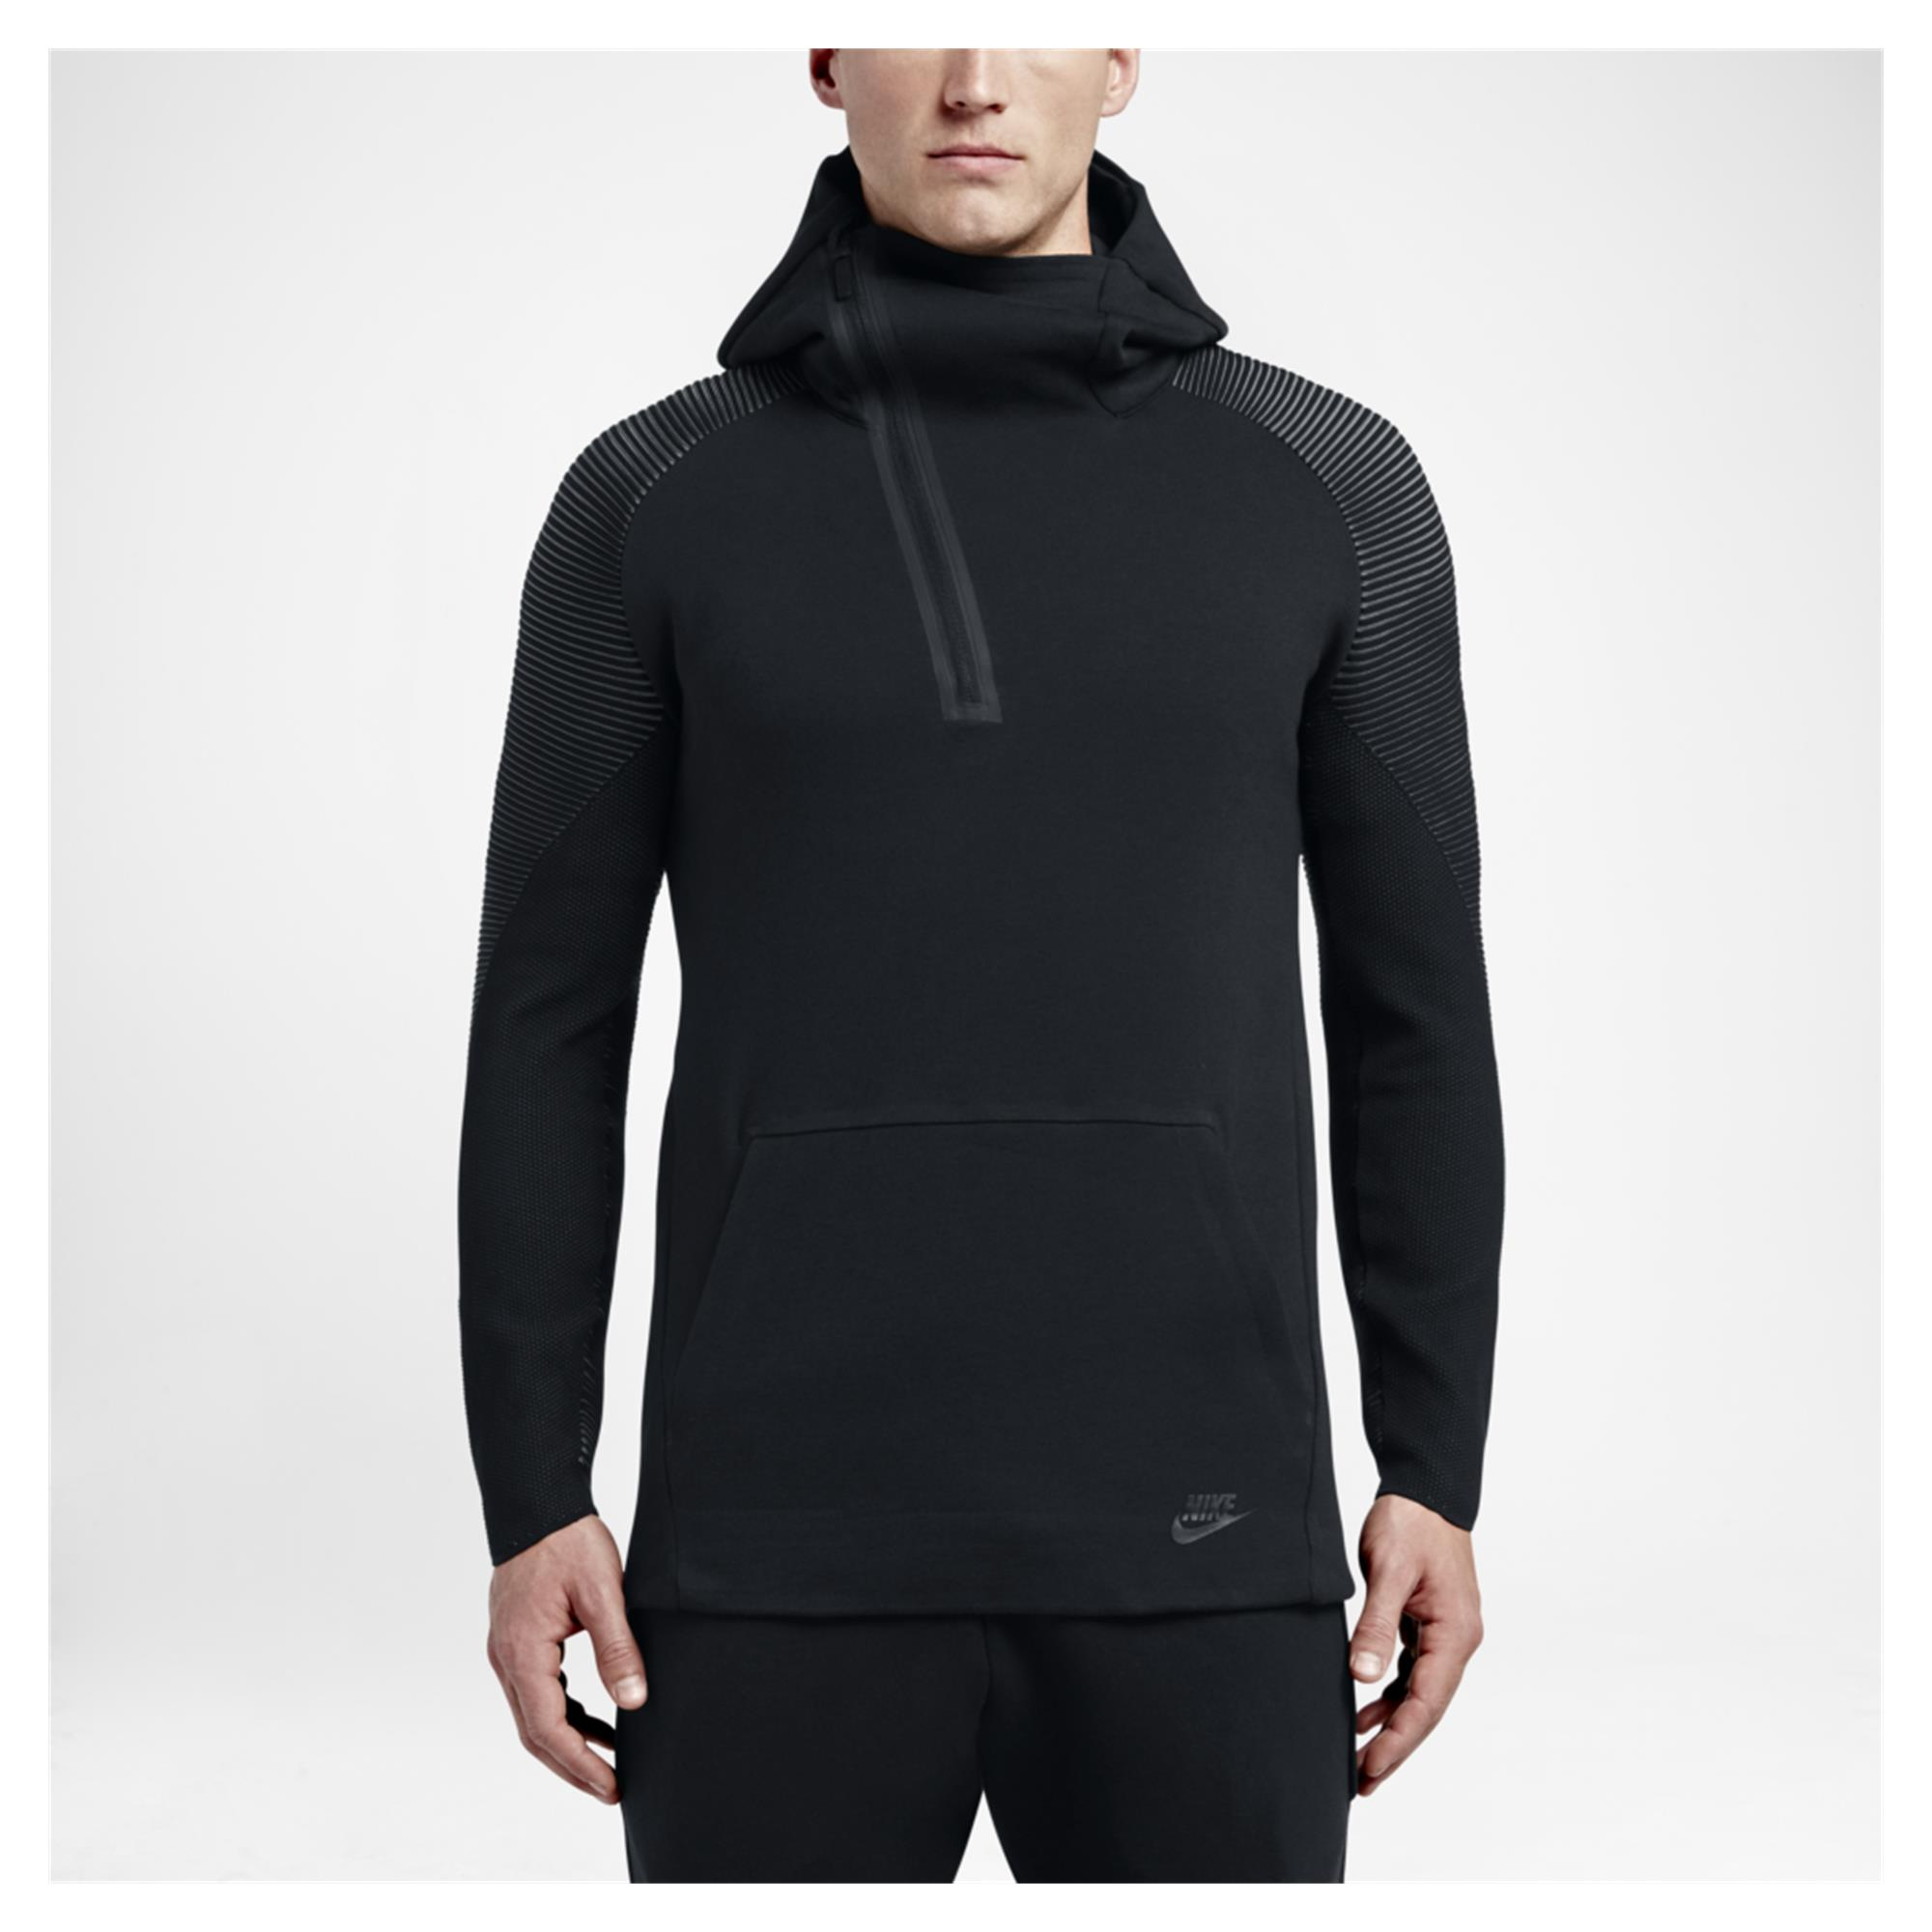 BLUSÃO NIKE TECH FLEECE MASCULINO.jpg